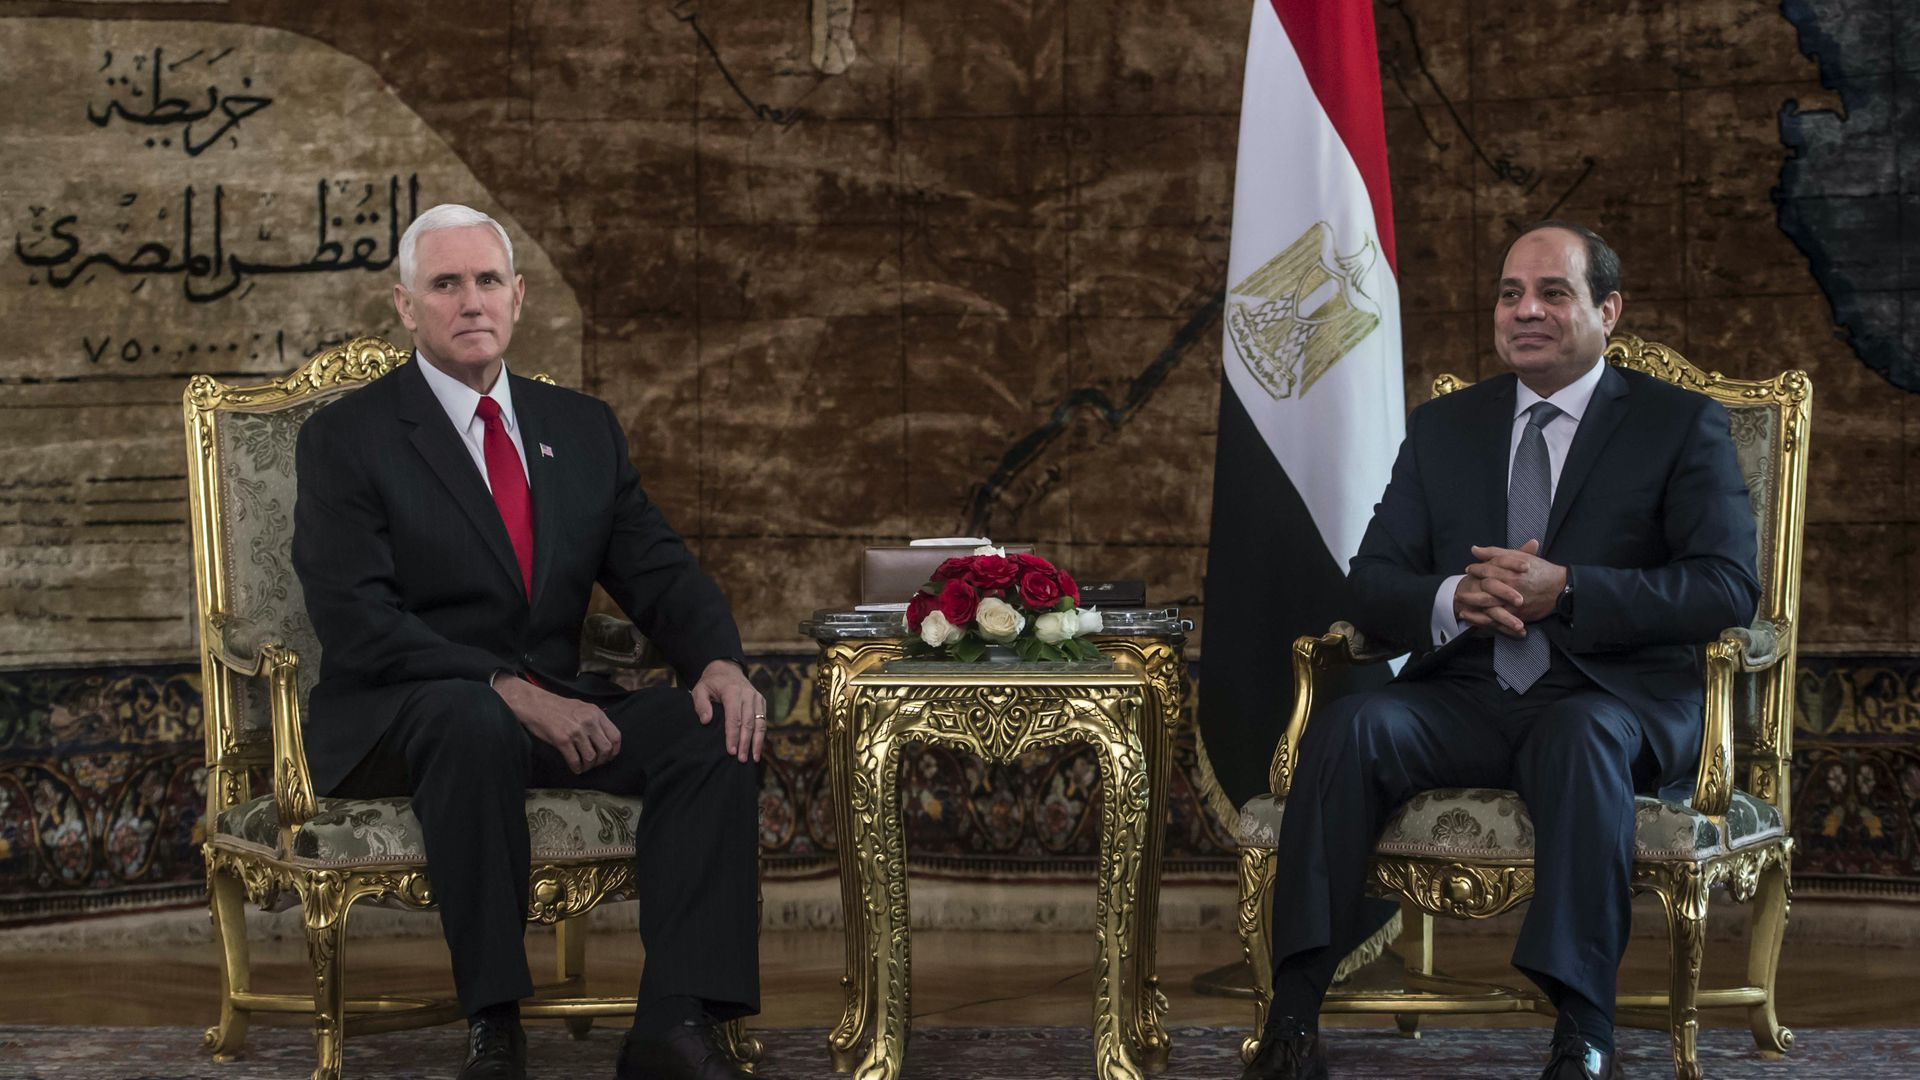 Egyptian President Abdel Fattah al-Sisi meets with Vice President Mike Pence.